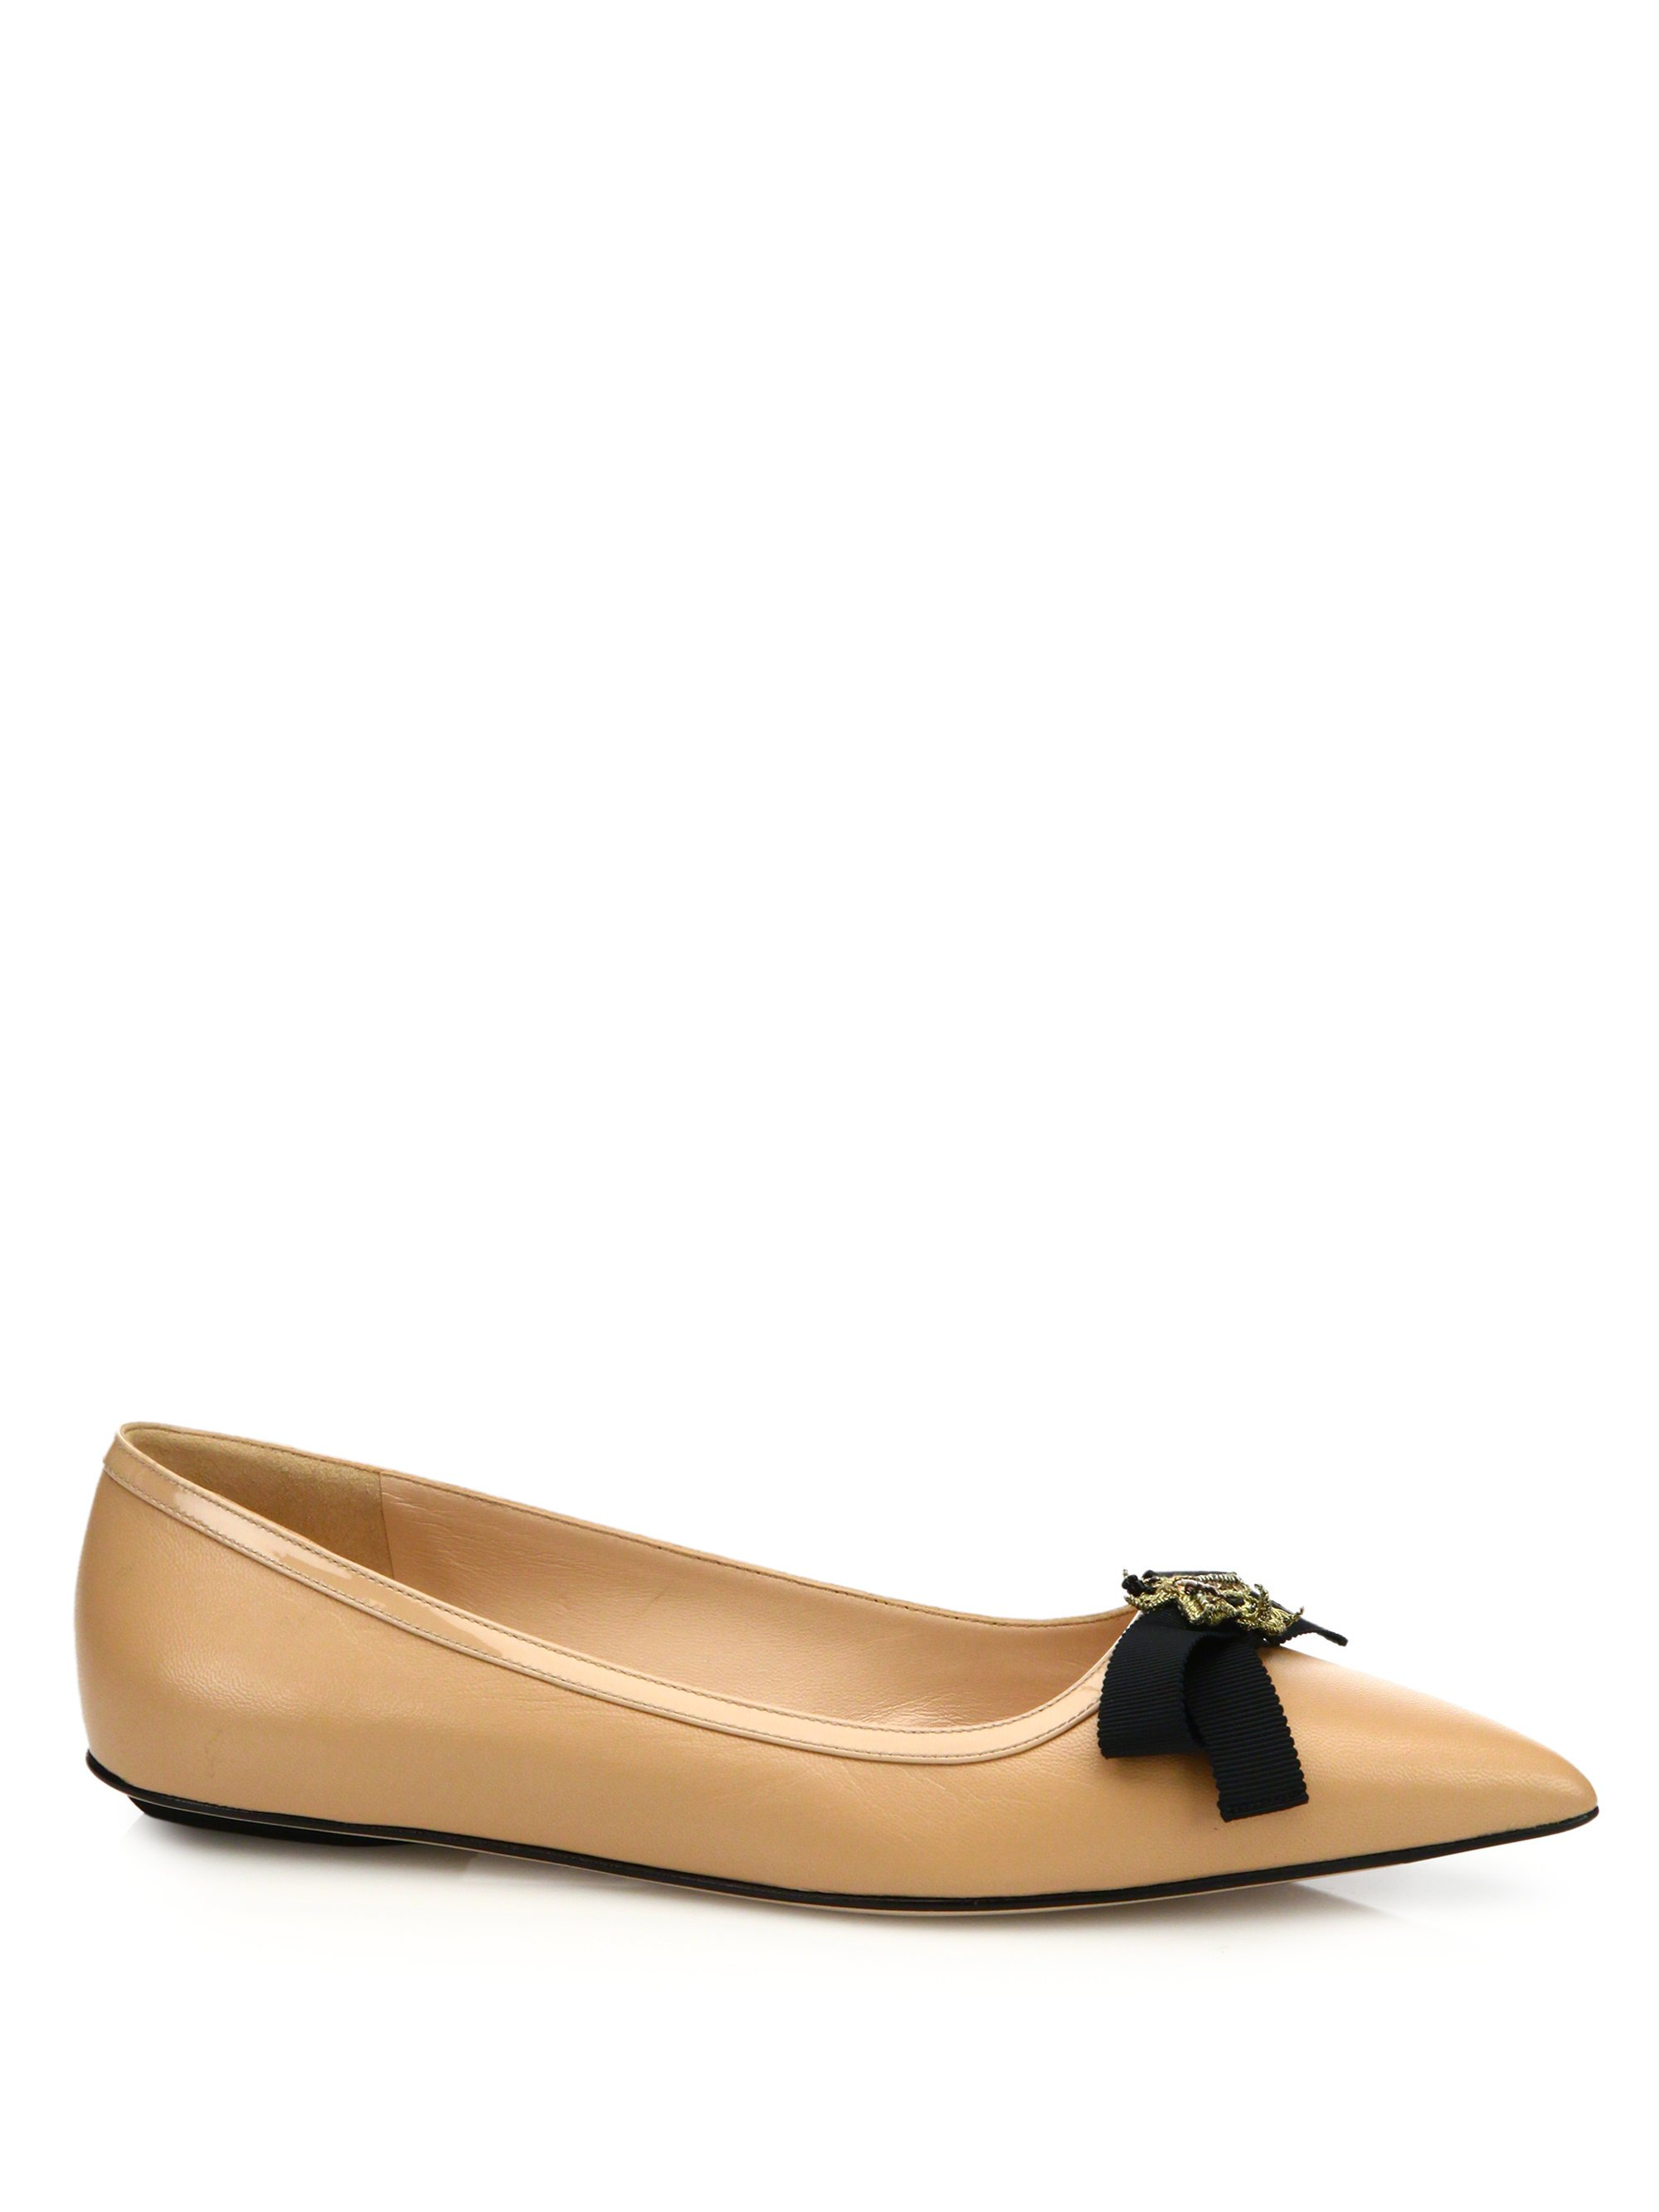 189a26ad1 Gucci Moody Leather Ballet Flats in Natural - Lyst